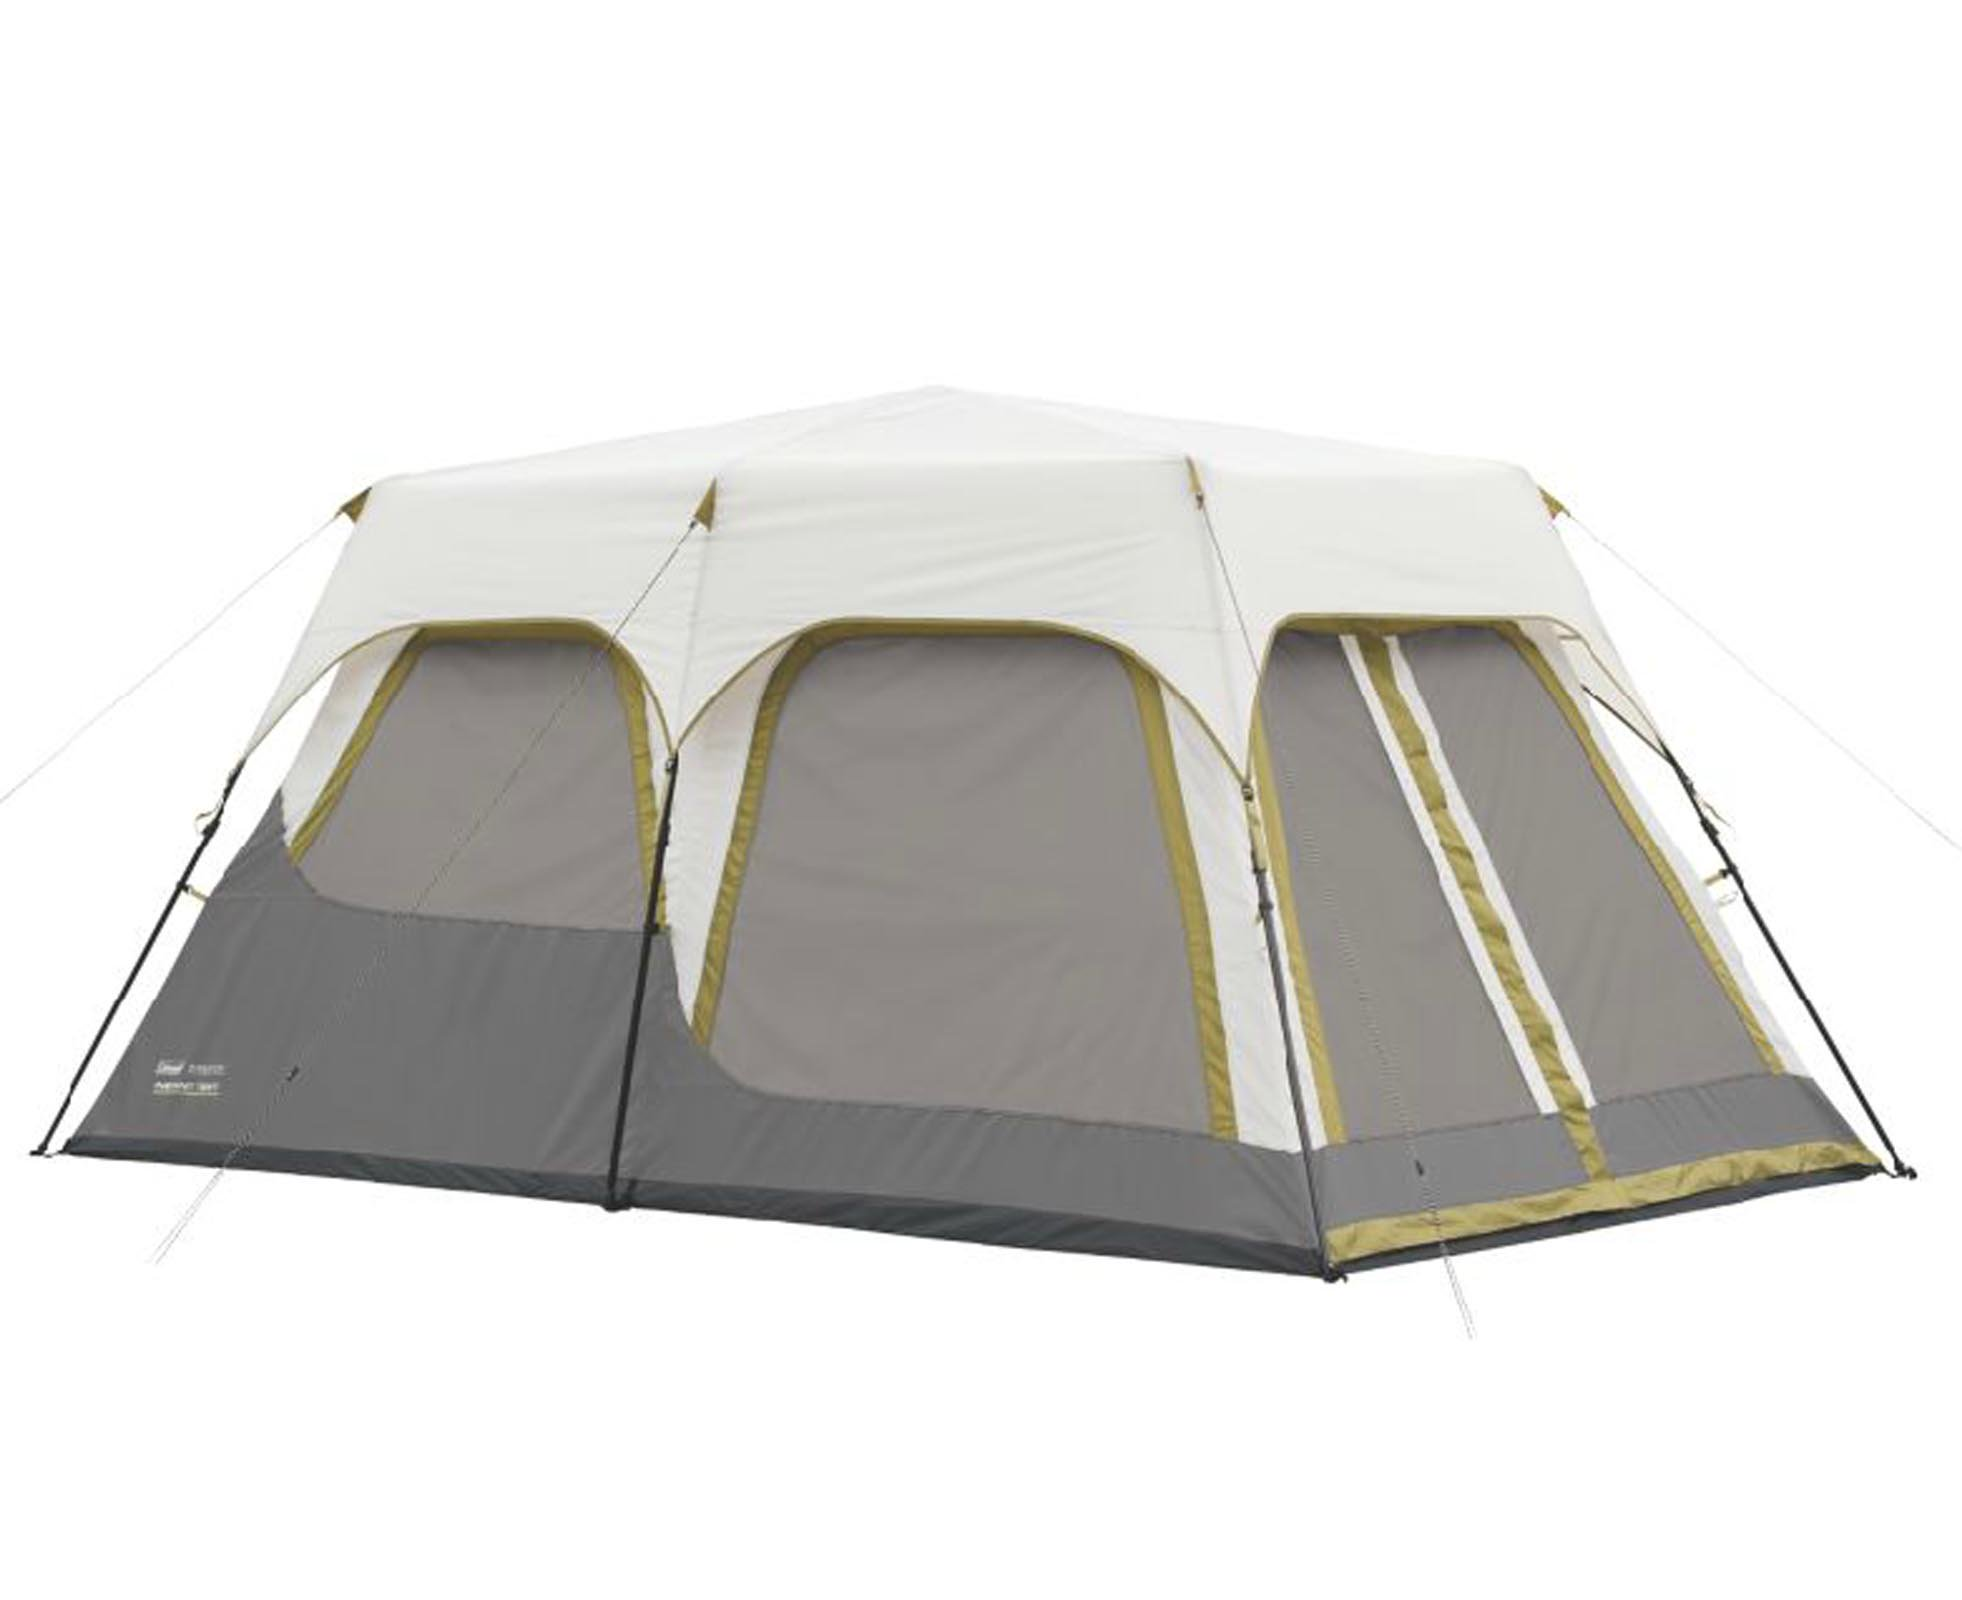 Coleman Signature 8-Person 2-Room Instant C&ing Tent with Rainfly | 2000010318  sc 1 st  Walmart & Coleman Signature 8-Person 2-Room Instant Camping Tent with ...